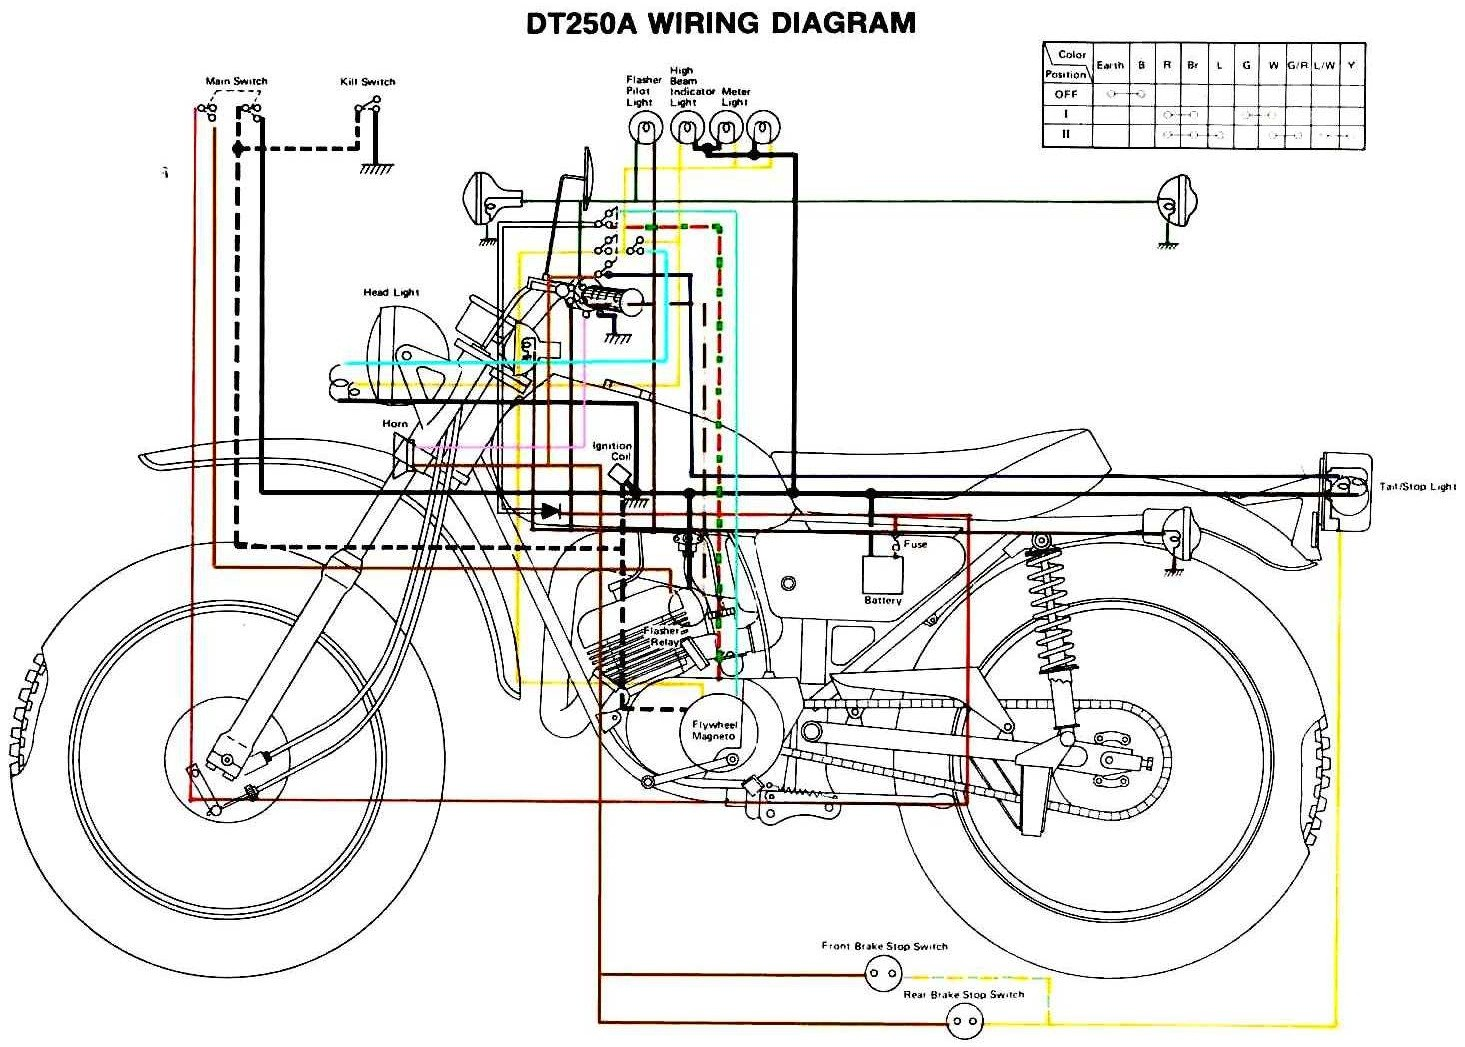 yamaha enduro wiring diagram - wiring diagram name mile-size -  mile-size.agirepoliticamente.it  agire politicamente